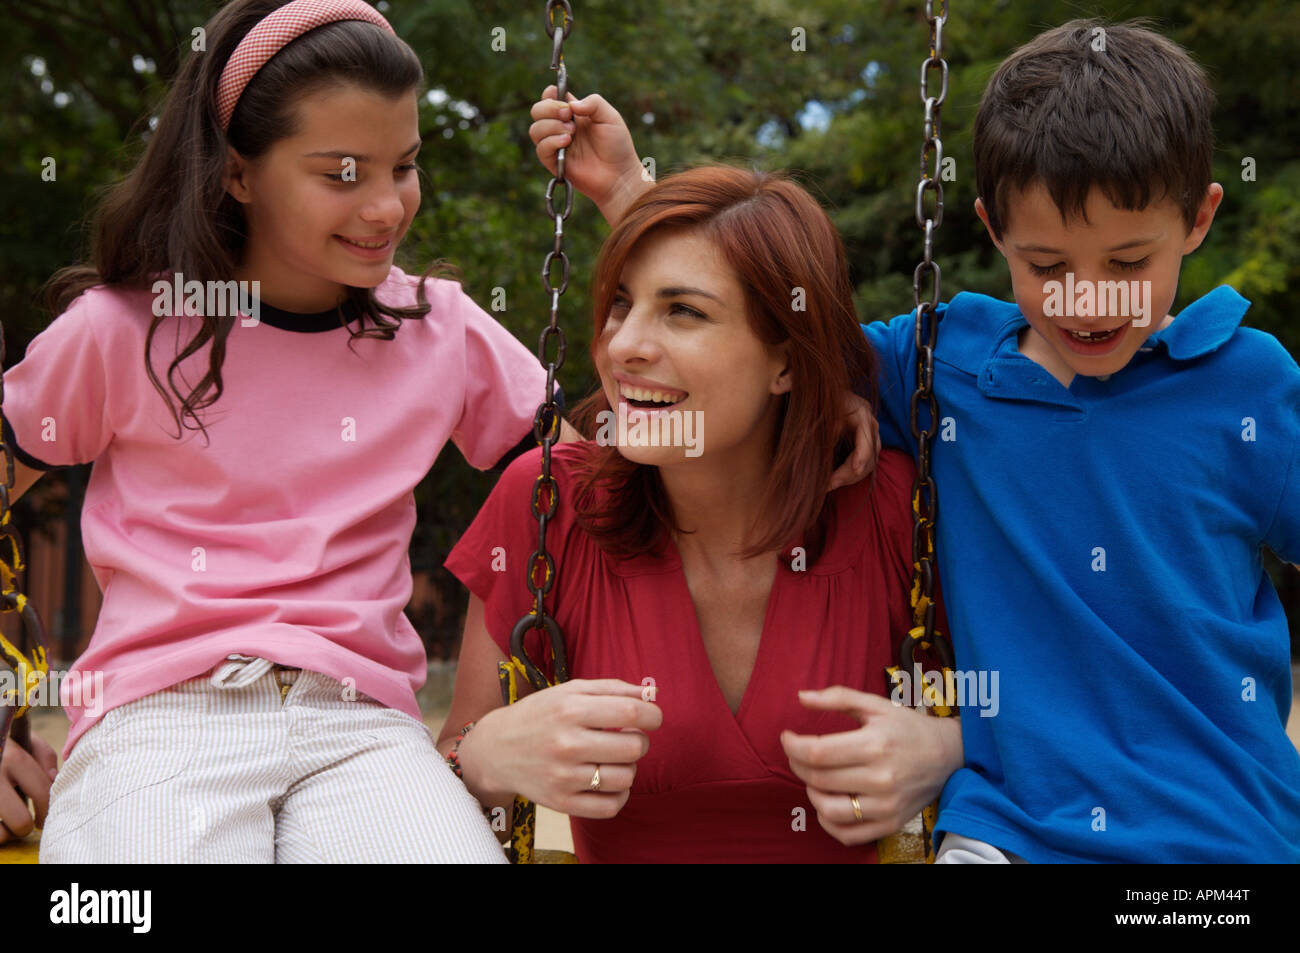 Mother and children in playground - Stock Image